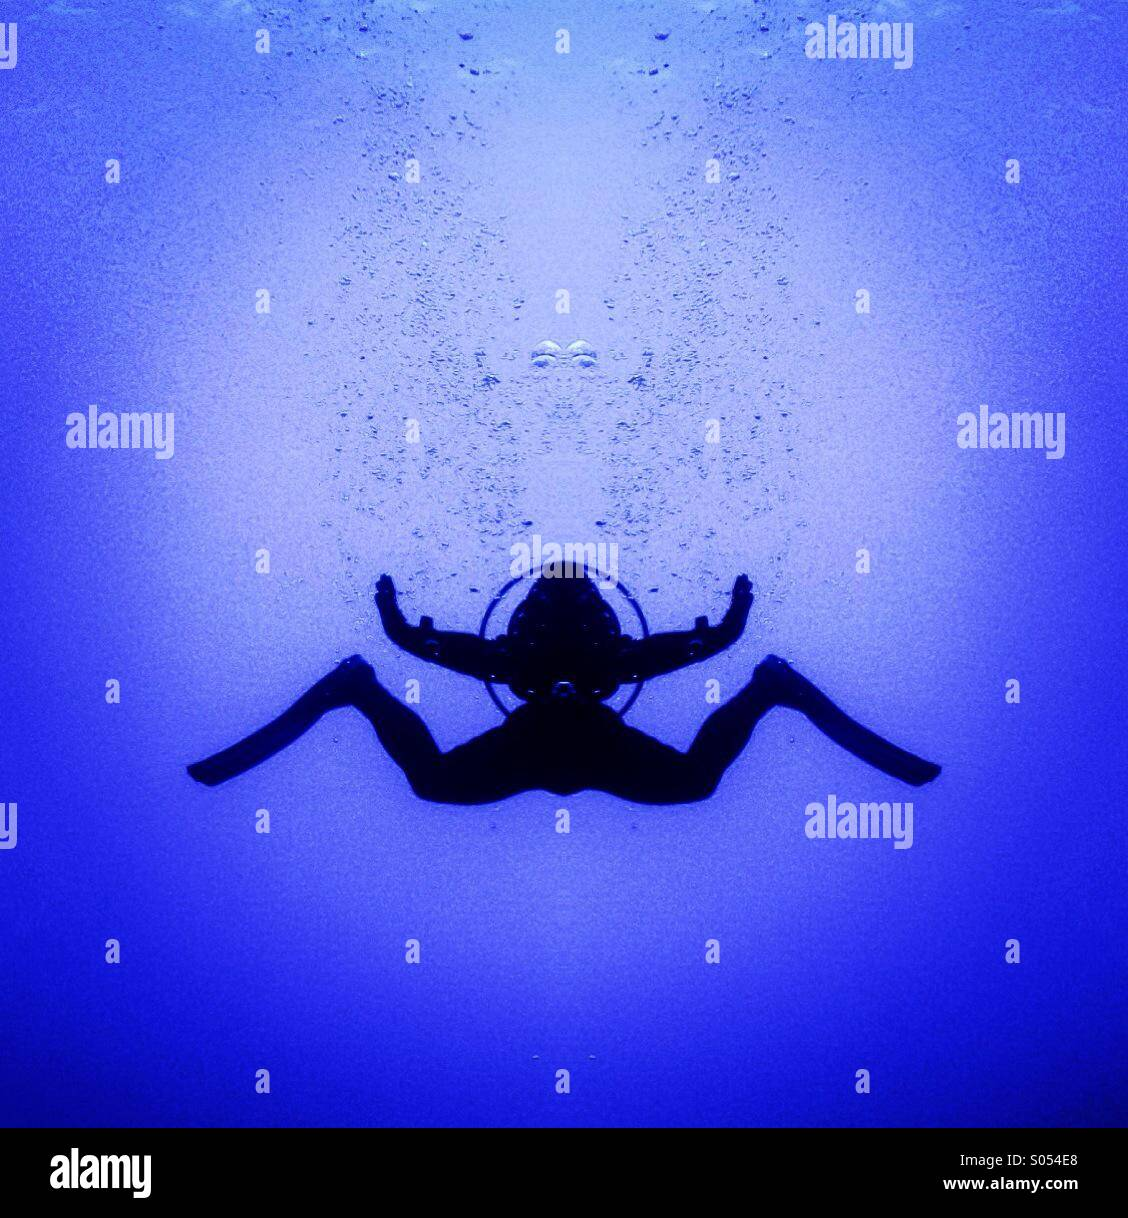 Scuba diver silhouette mirrored in mid water. - Stock Image